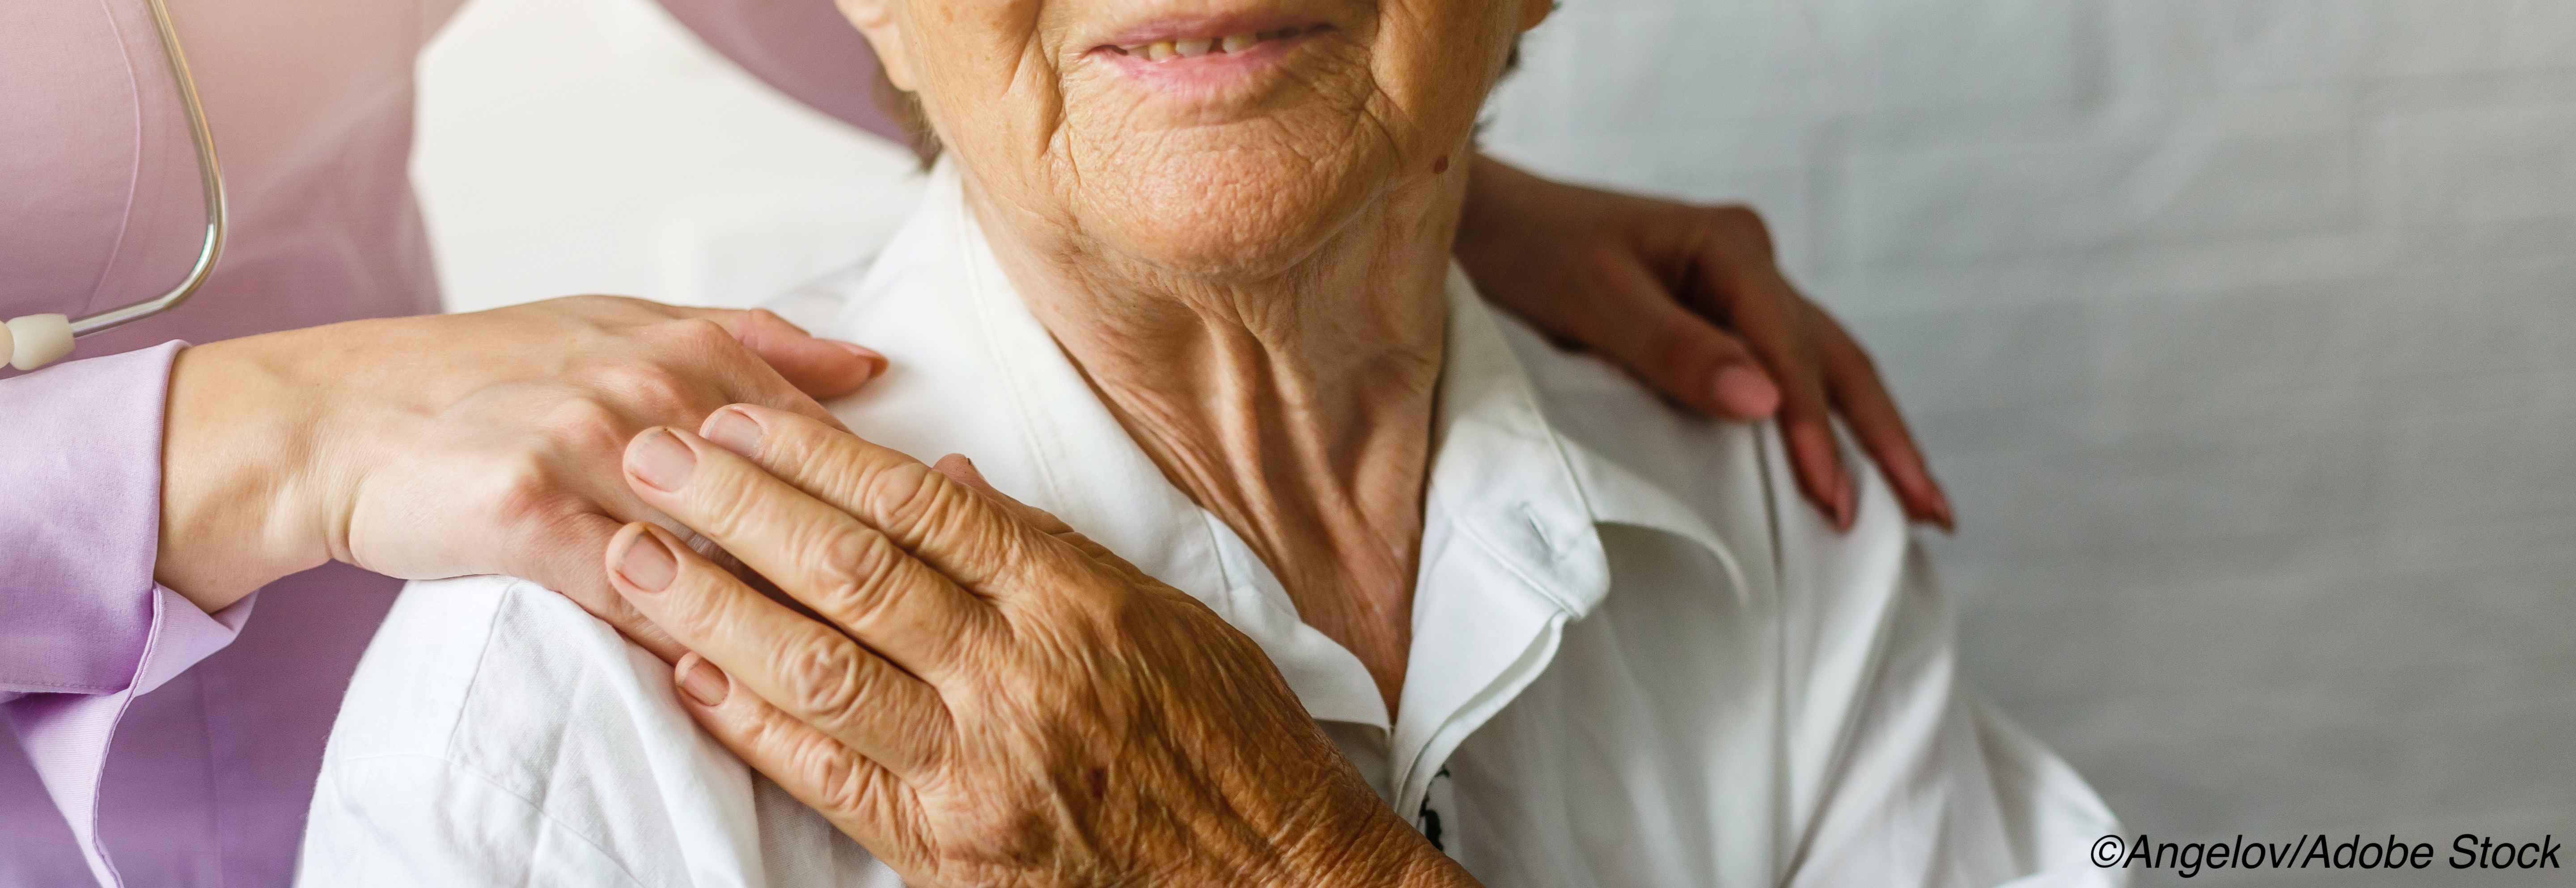 Palliative Care Improves End-of-Life Care Among Non-Cancer Patients